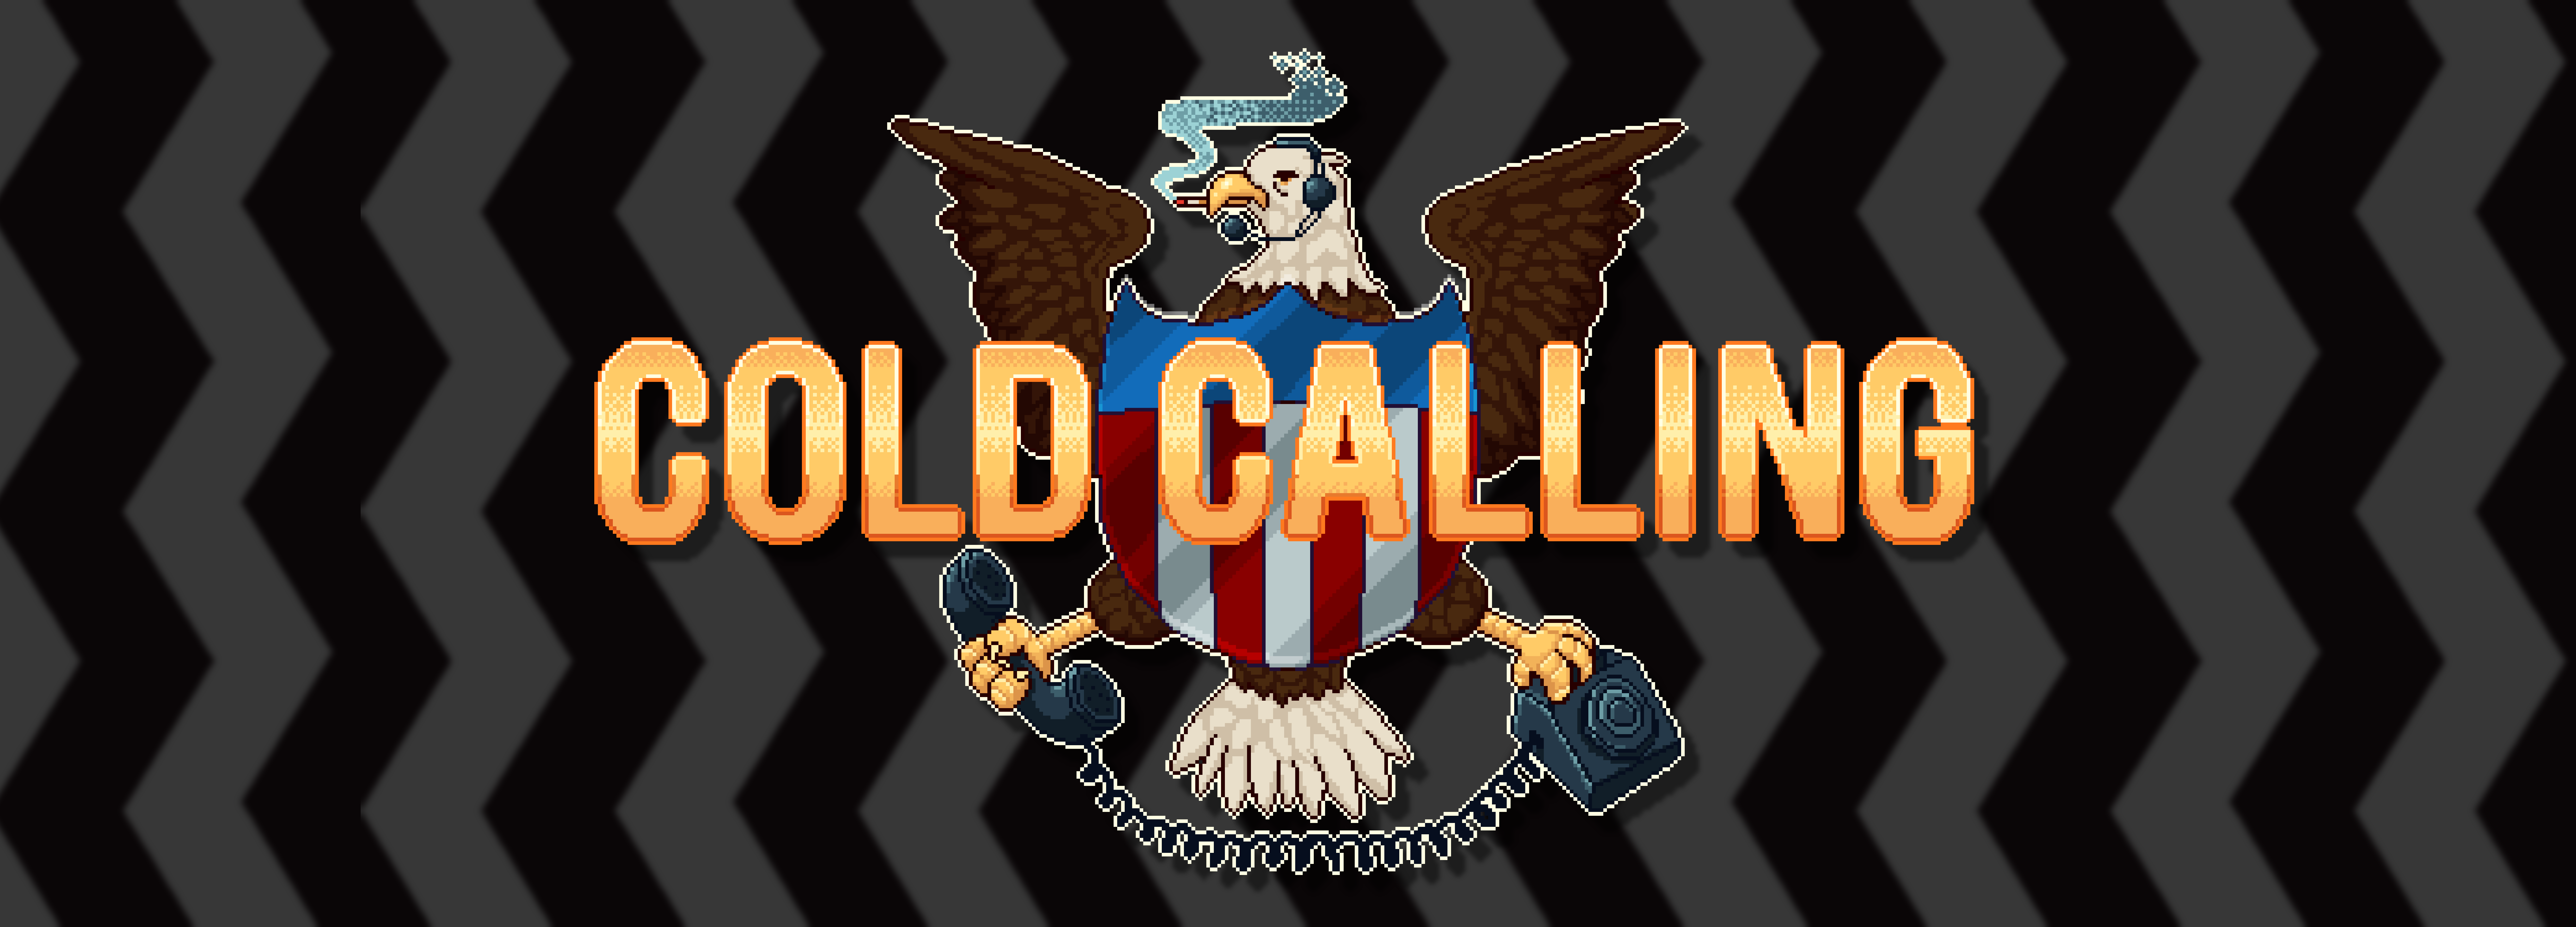 Cold Calling - Chapter 1 Demo